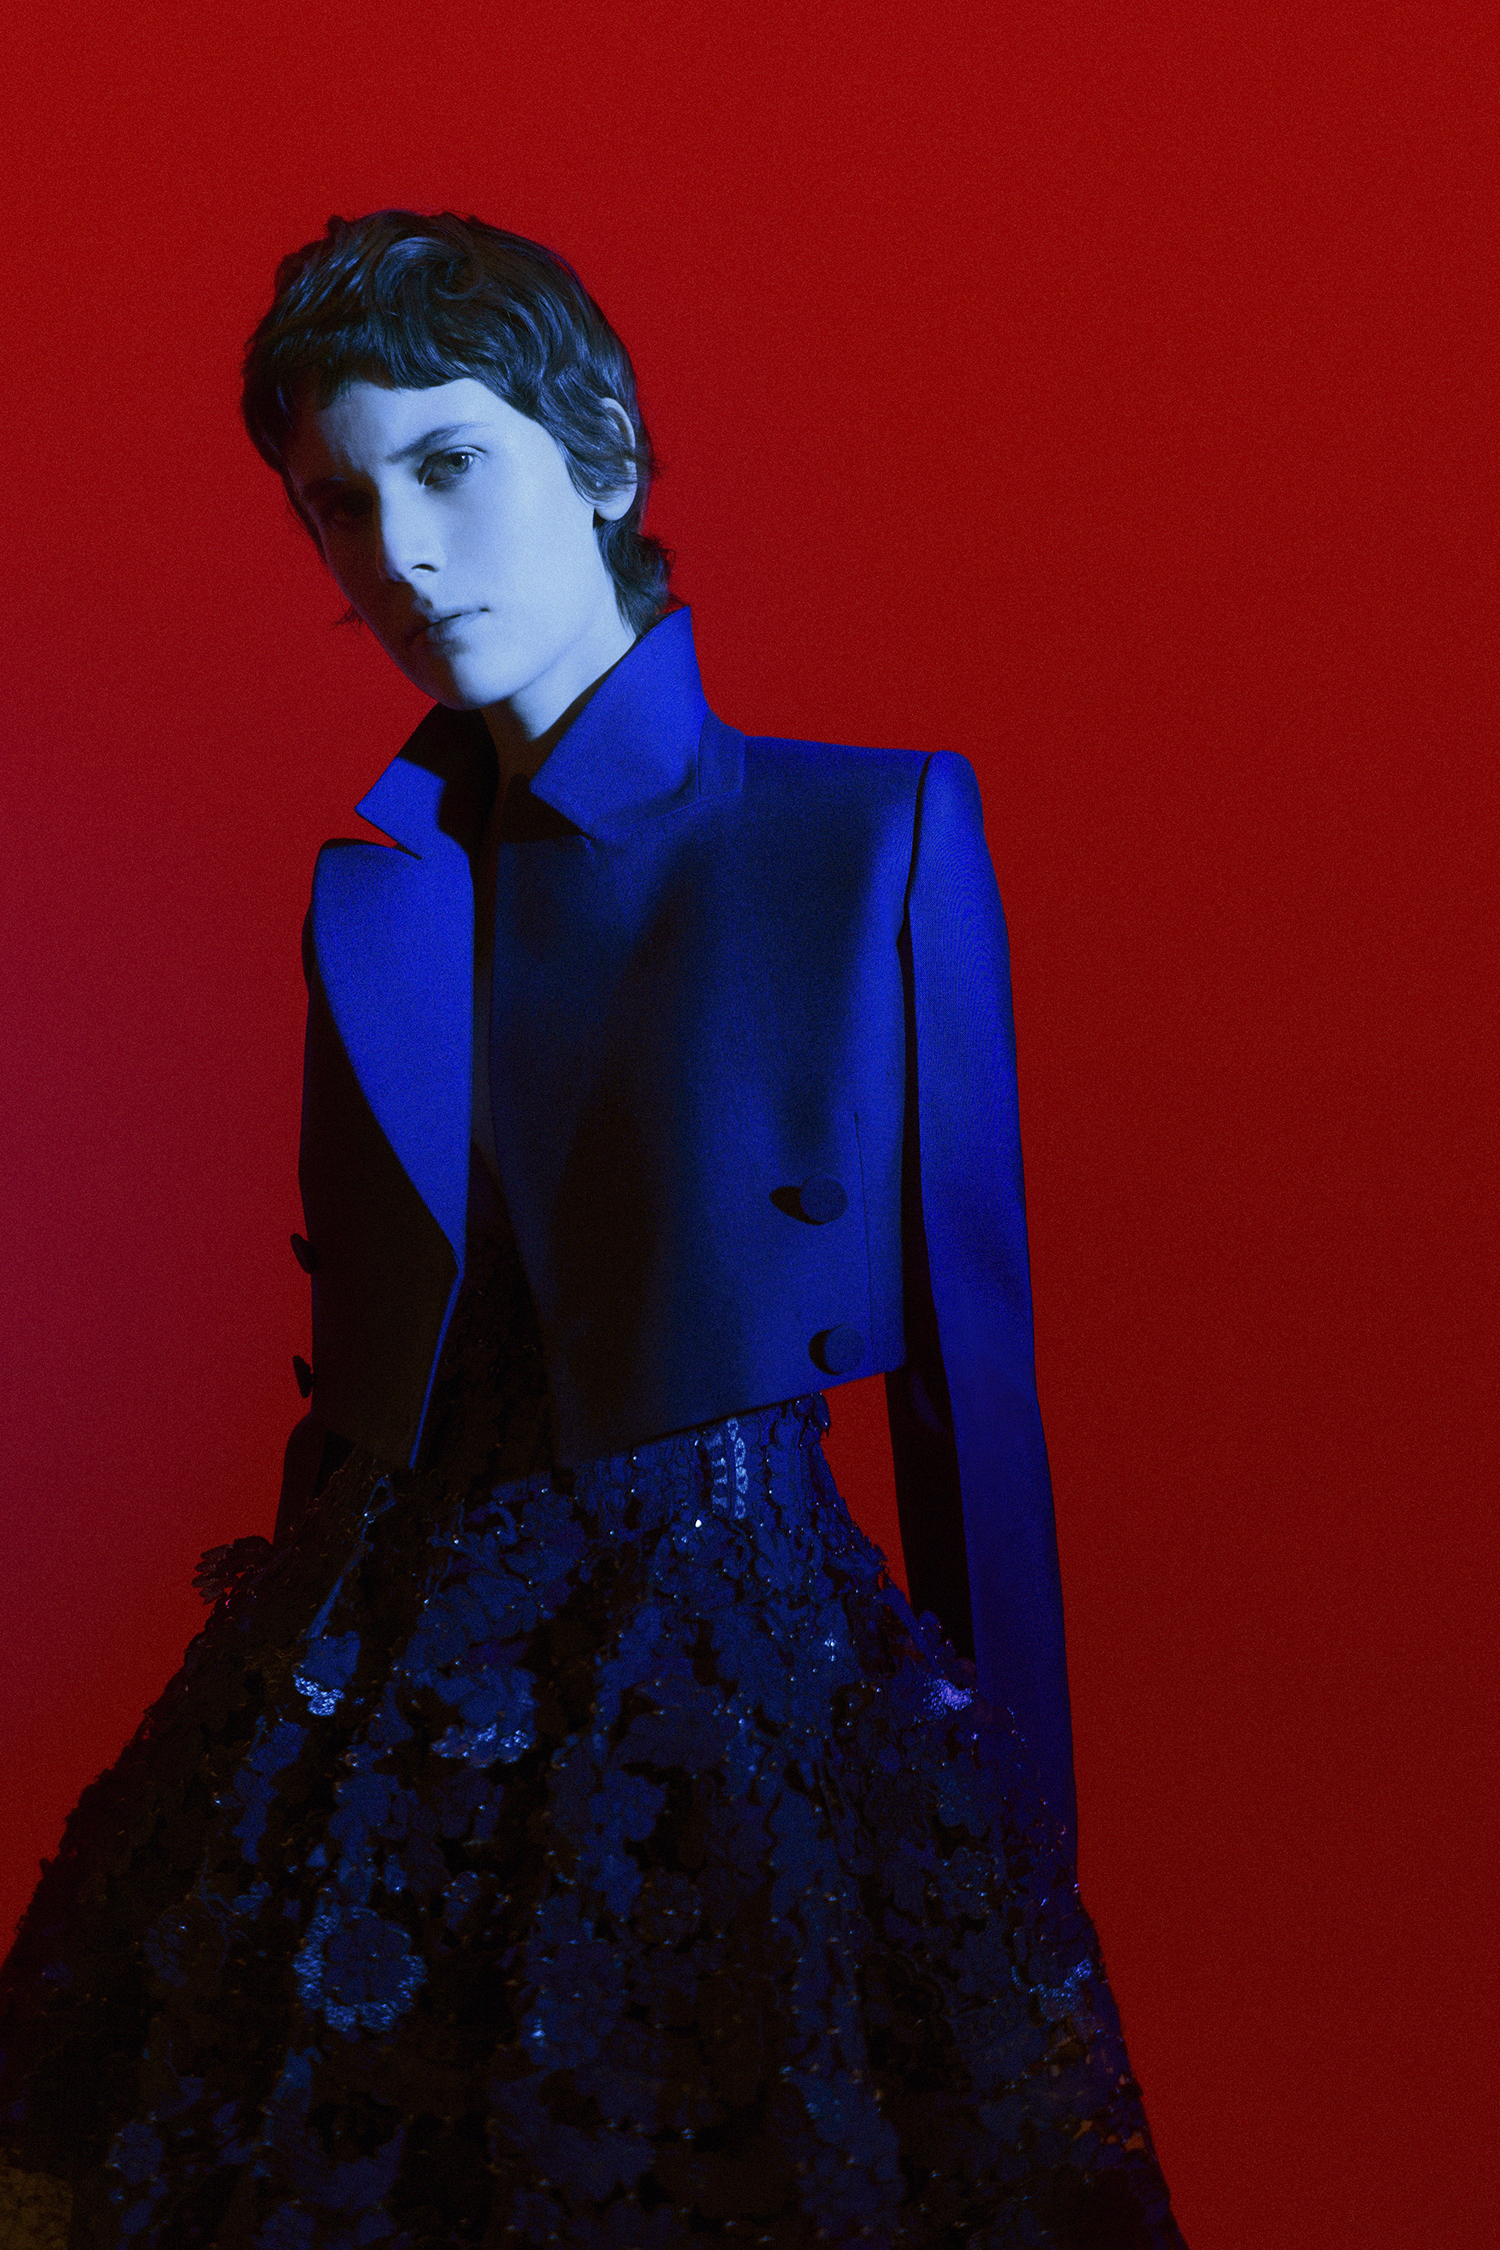 24 - Givenchy Haute Couture - Neil Krug.jpg